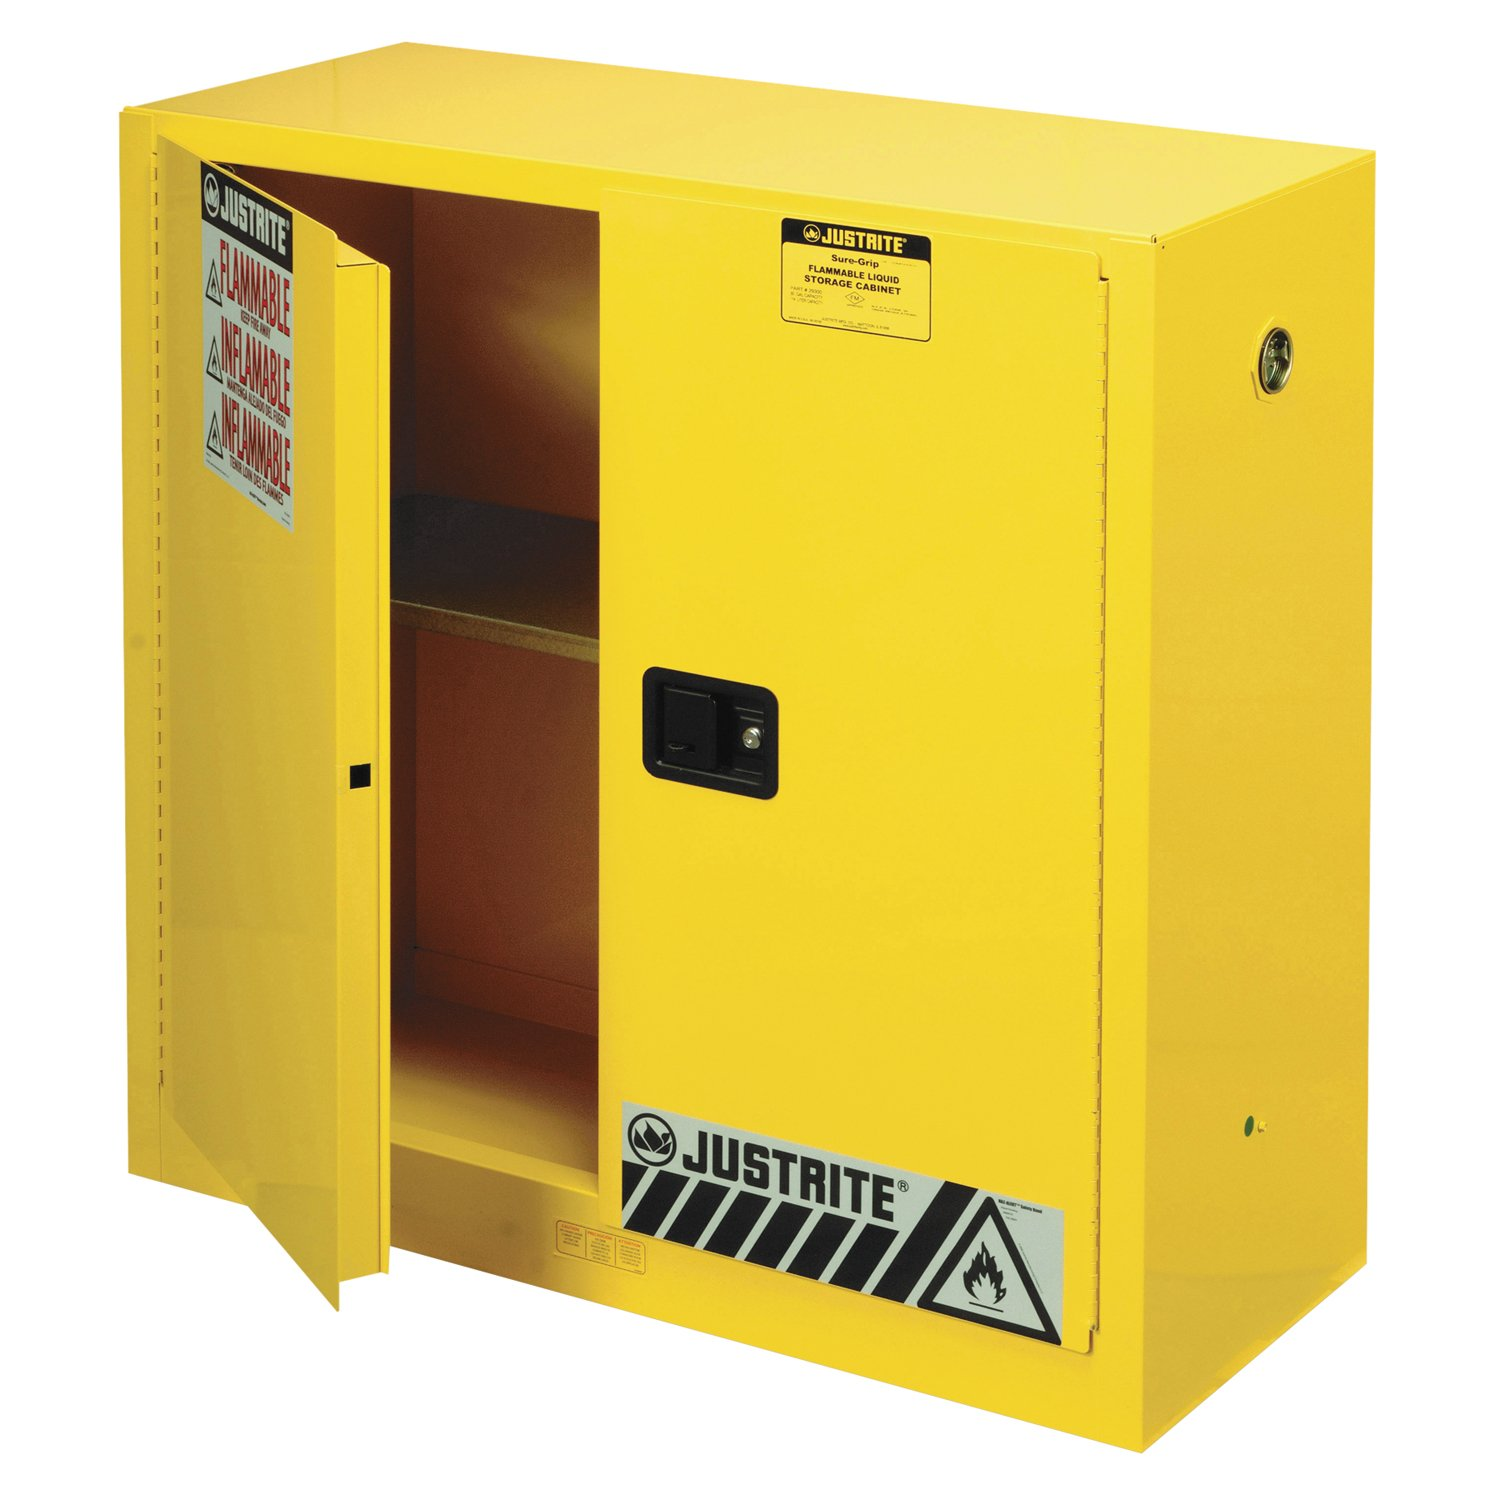 Amazon.com: Justrite 893000 Sure-Grip EX Flammable Safety Cabinet ...